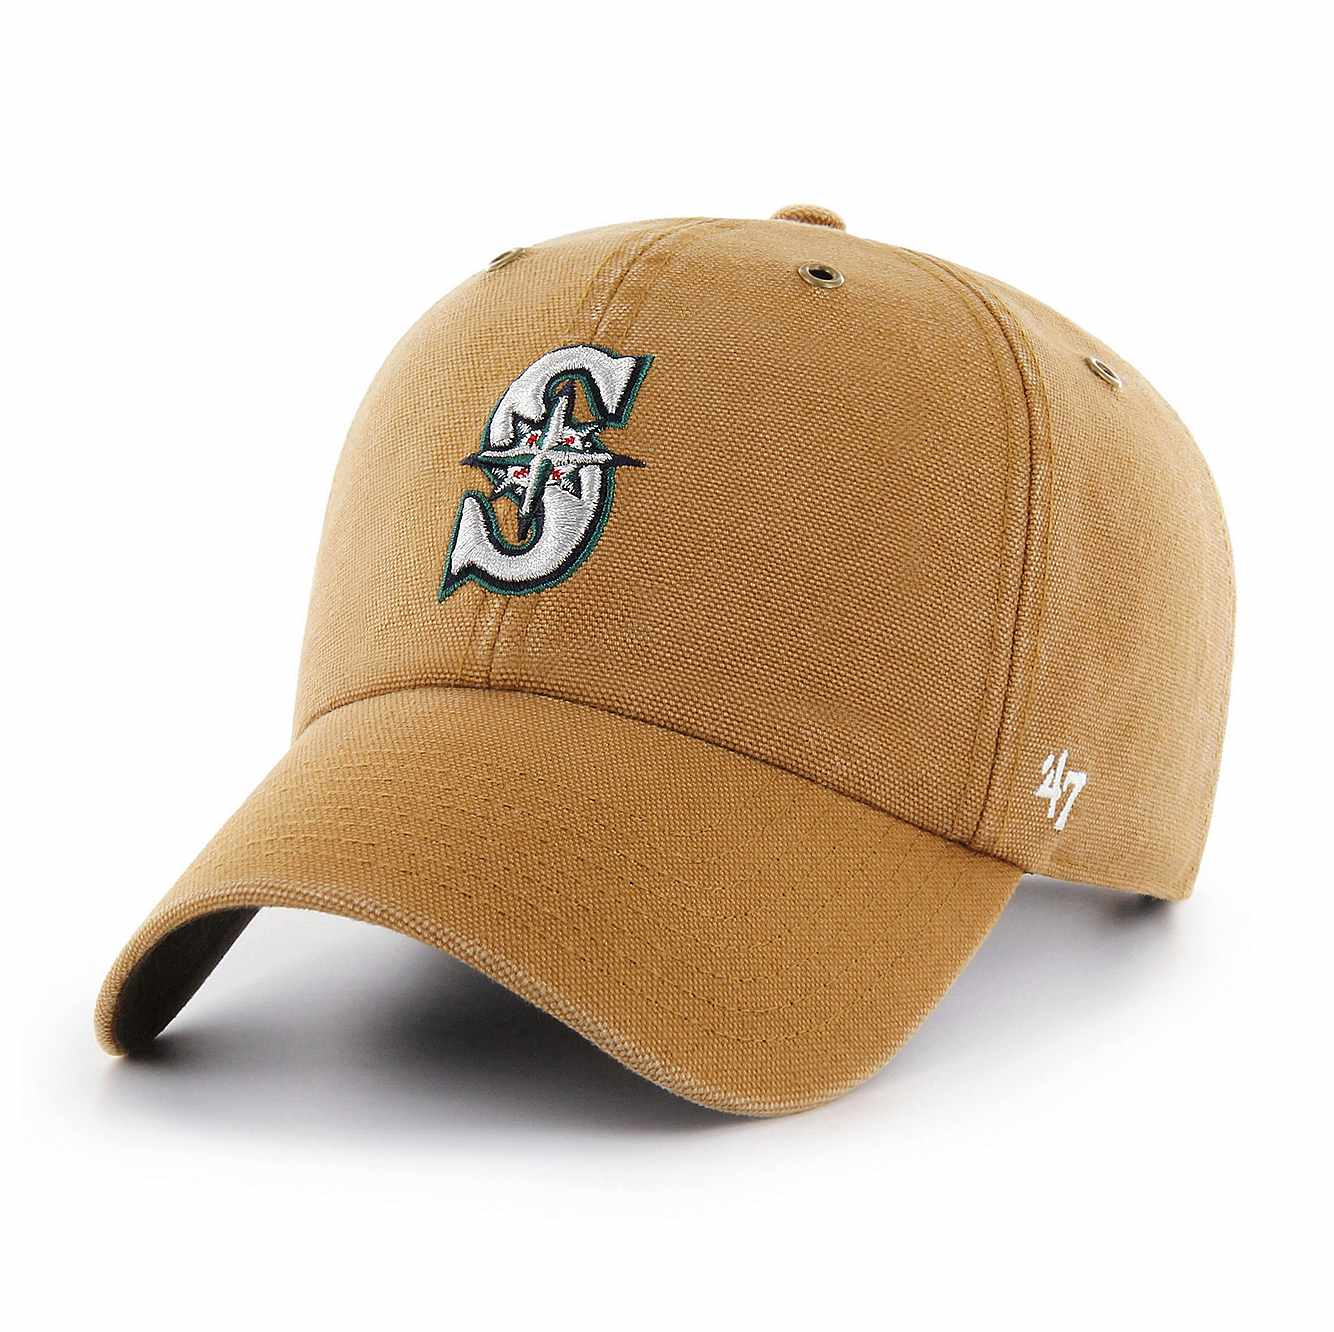 Picture of Seattle Mariners Carhartt x '47 Clean Up in Carhartt Brown